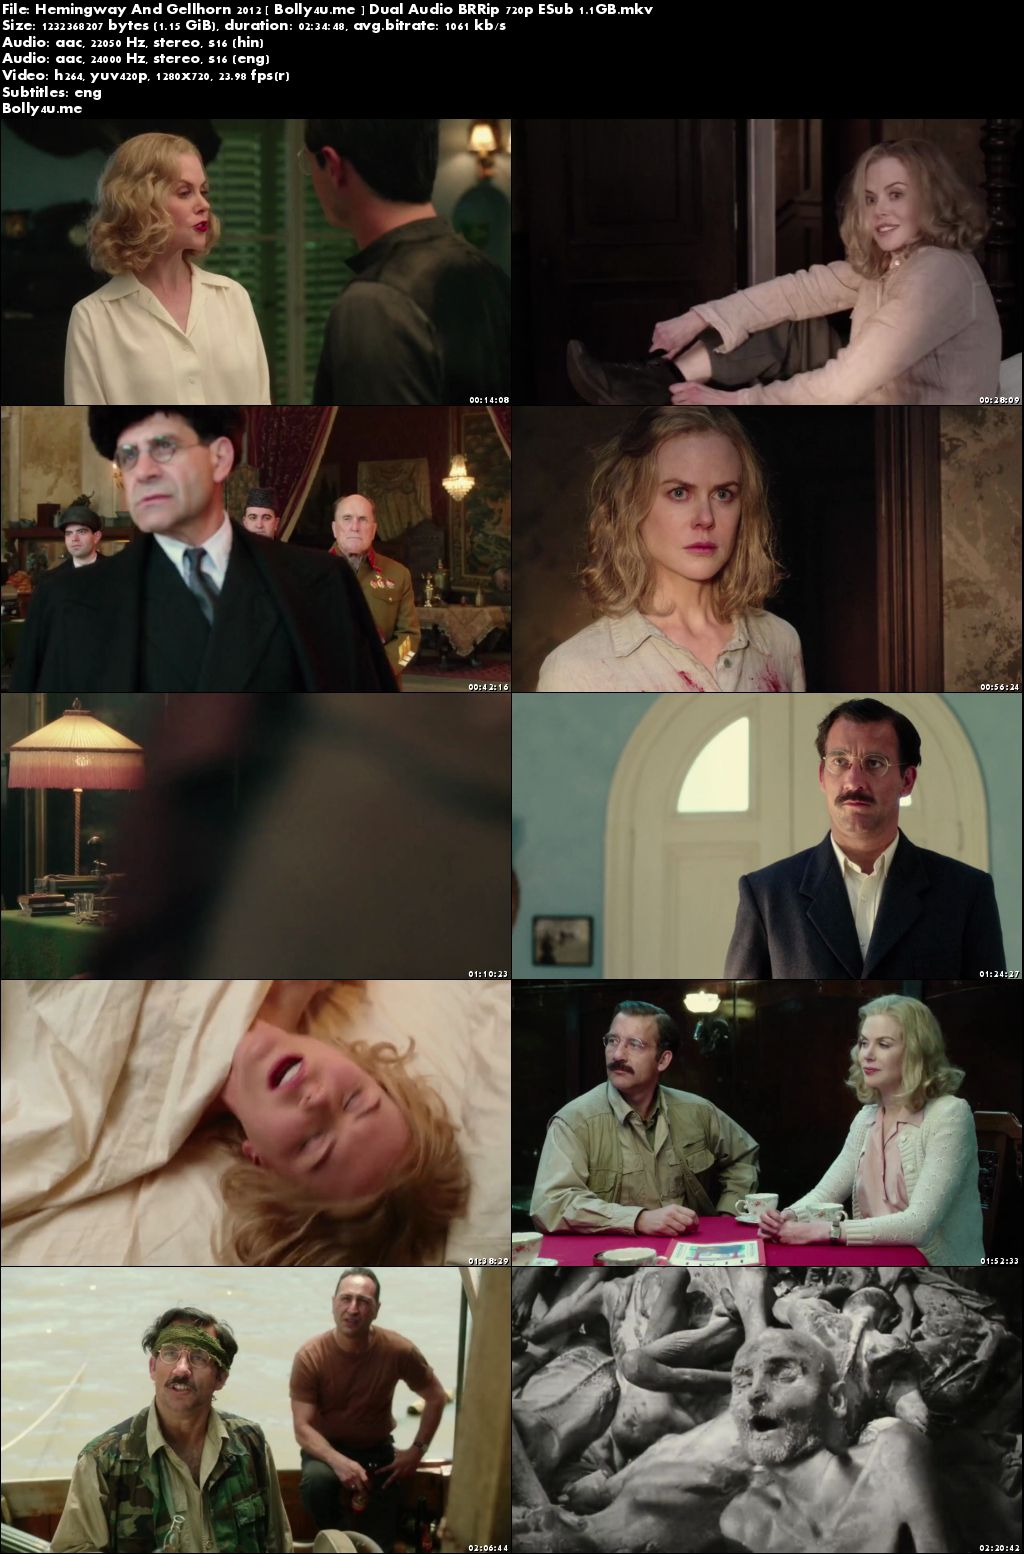 Hemingway And Gellhorn 2012 BRRip Hindi Dual Audio 720p ESub Download